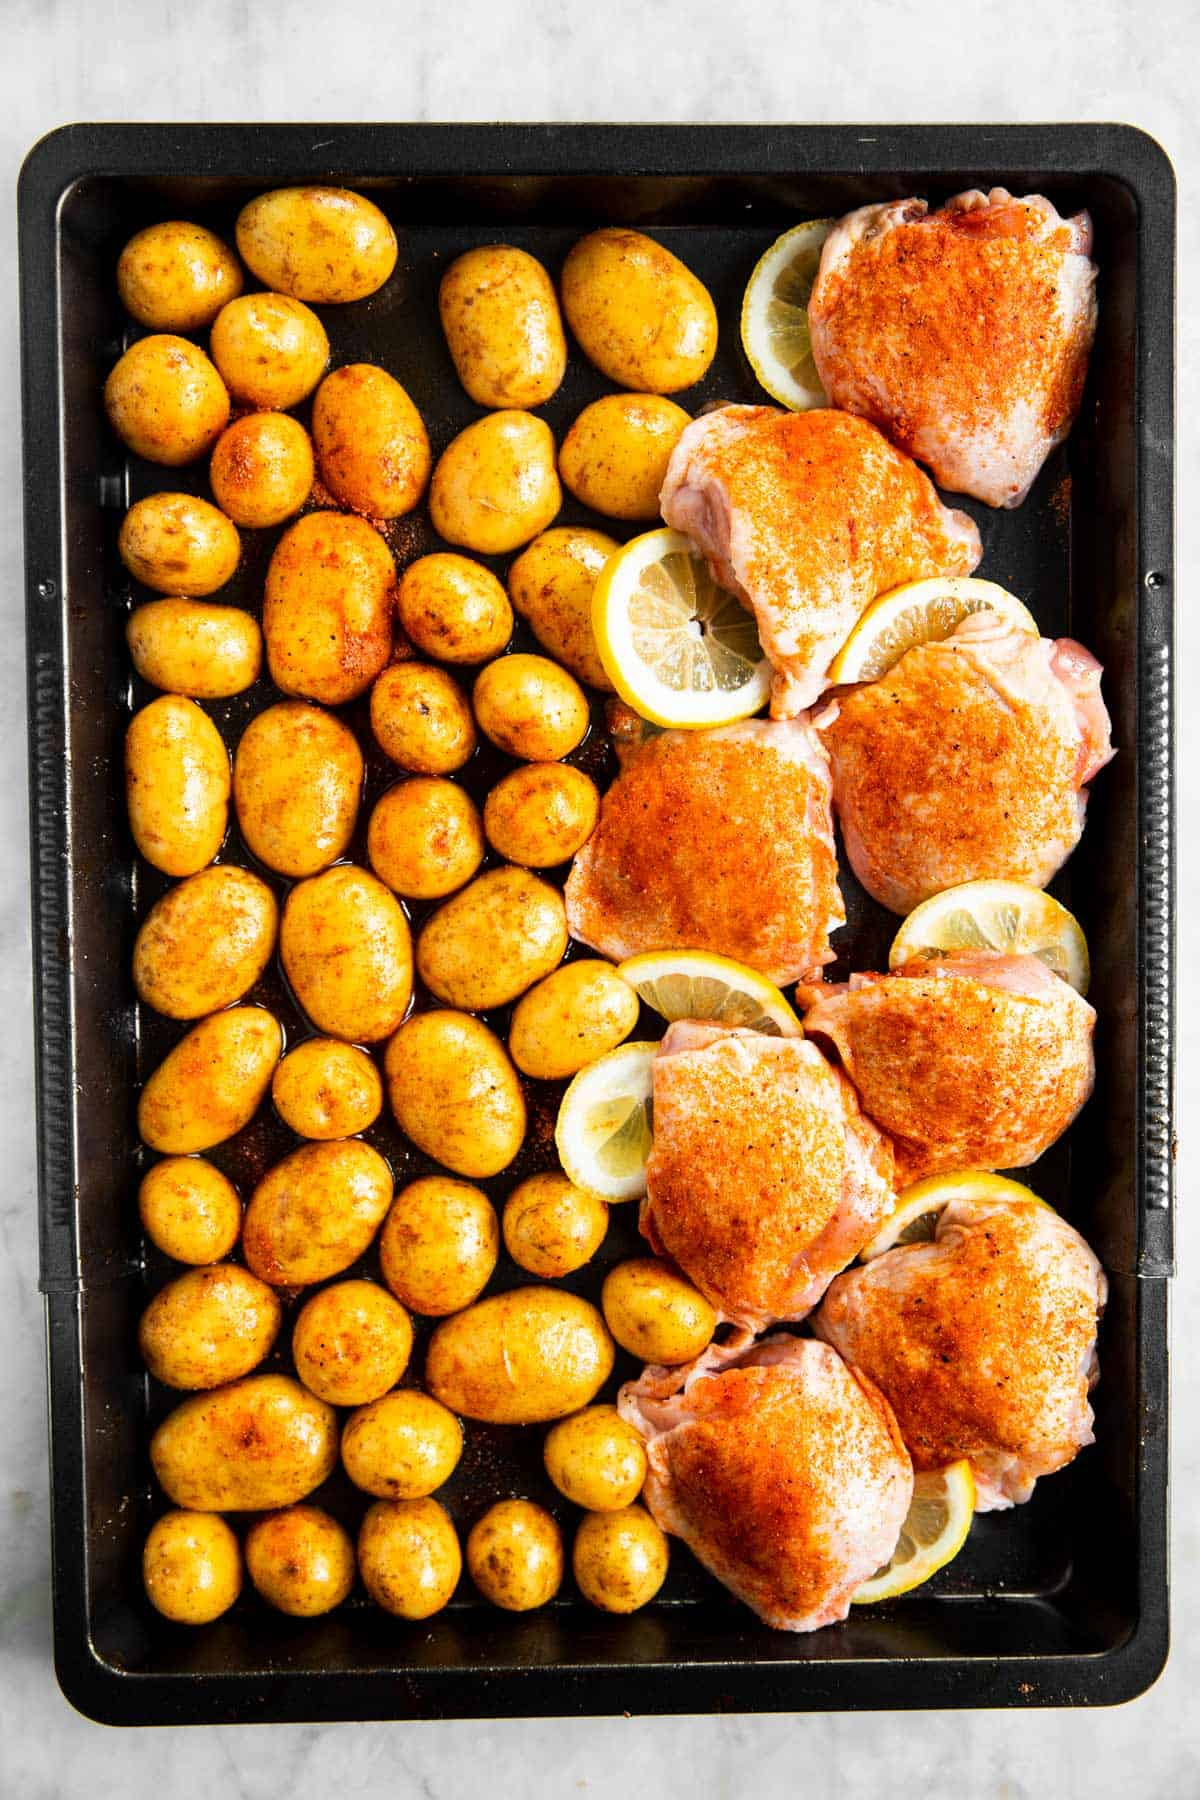 overhead view of seasoned potatoes and chicken thighs with lemon slices on black sheet pan